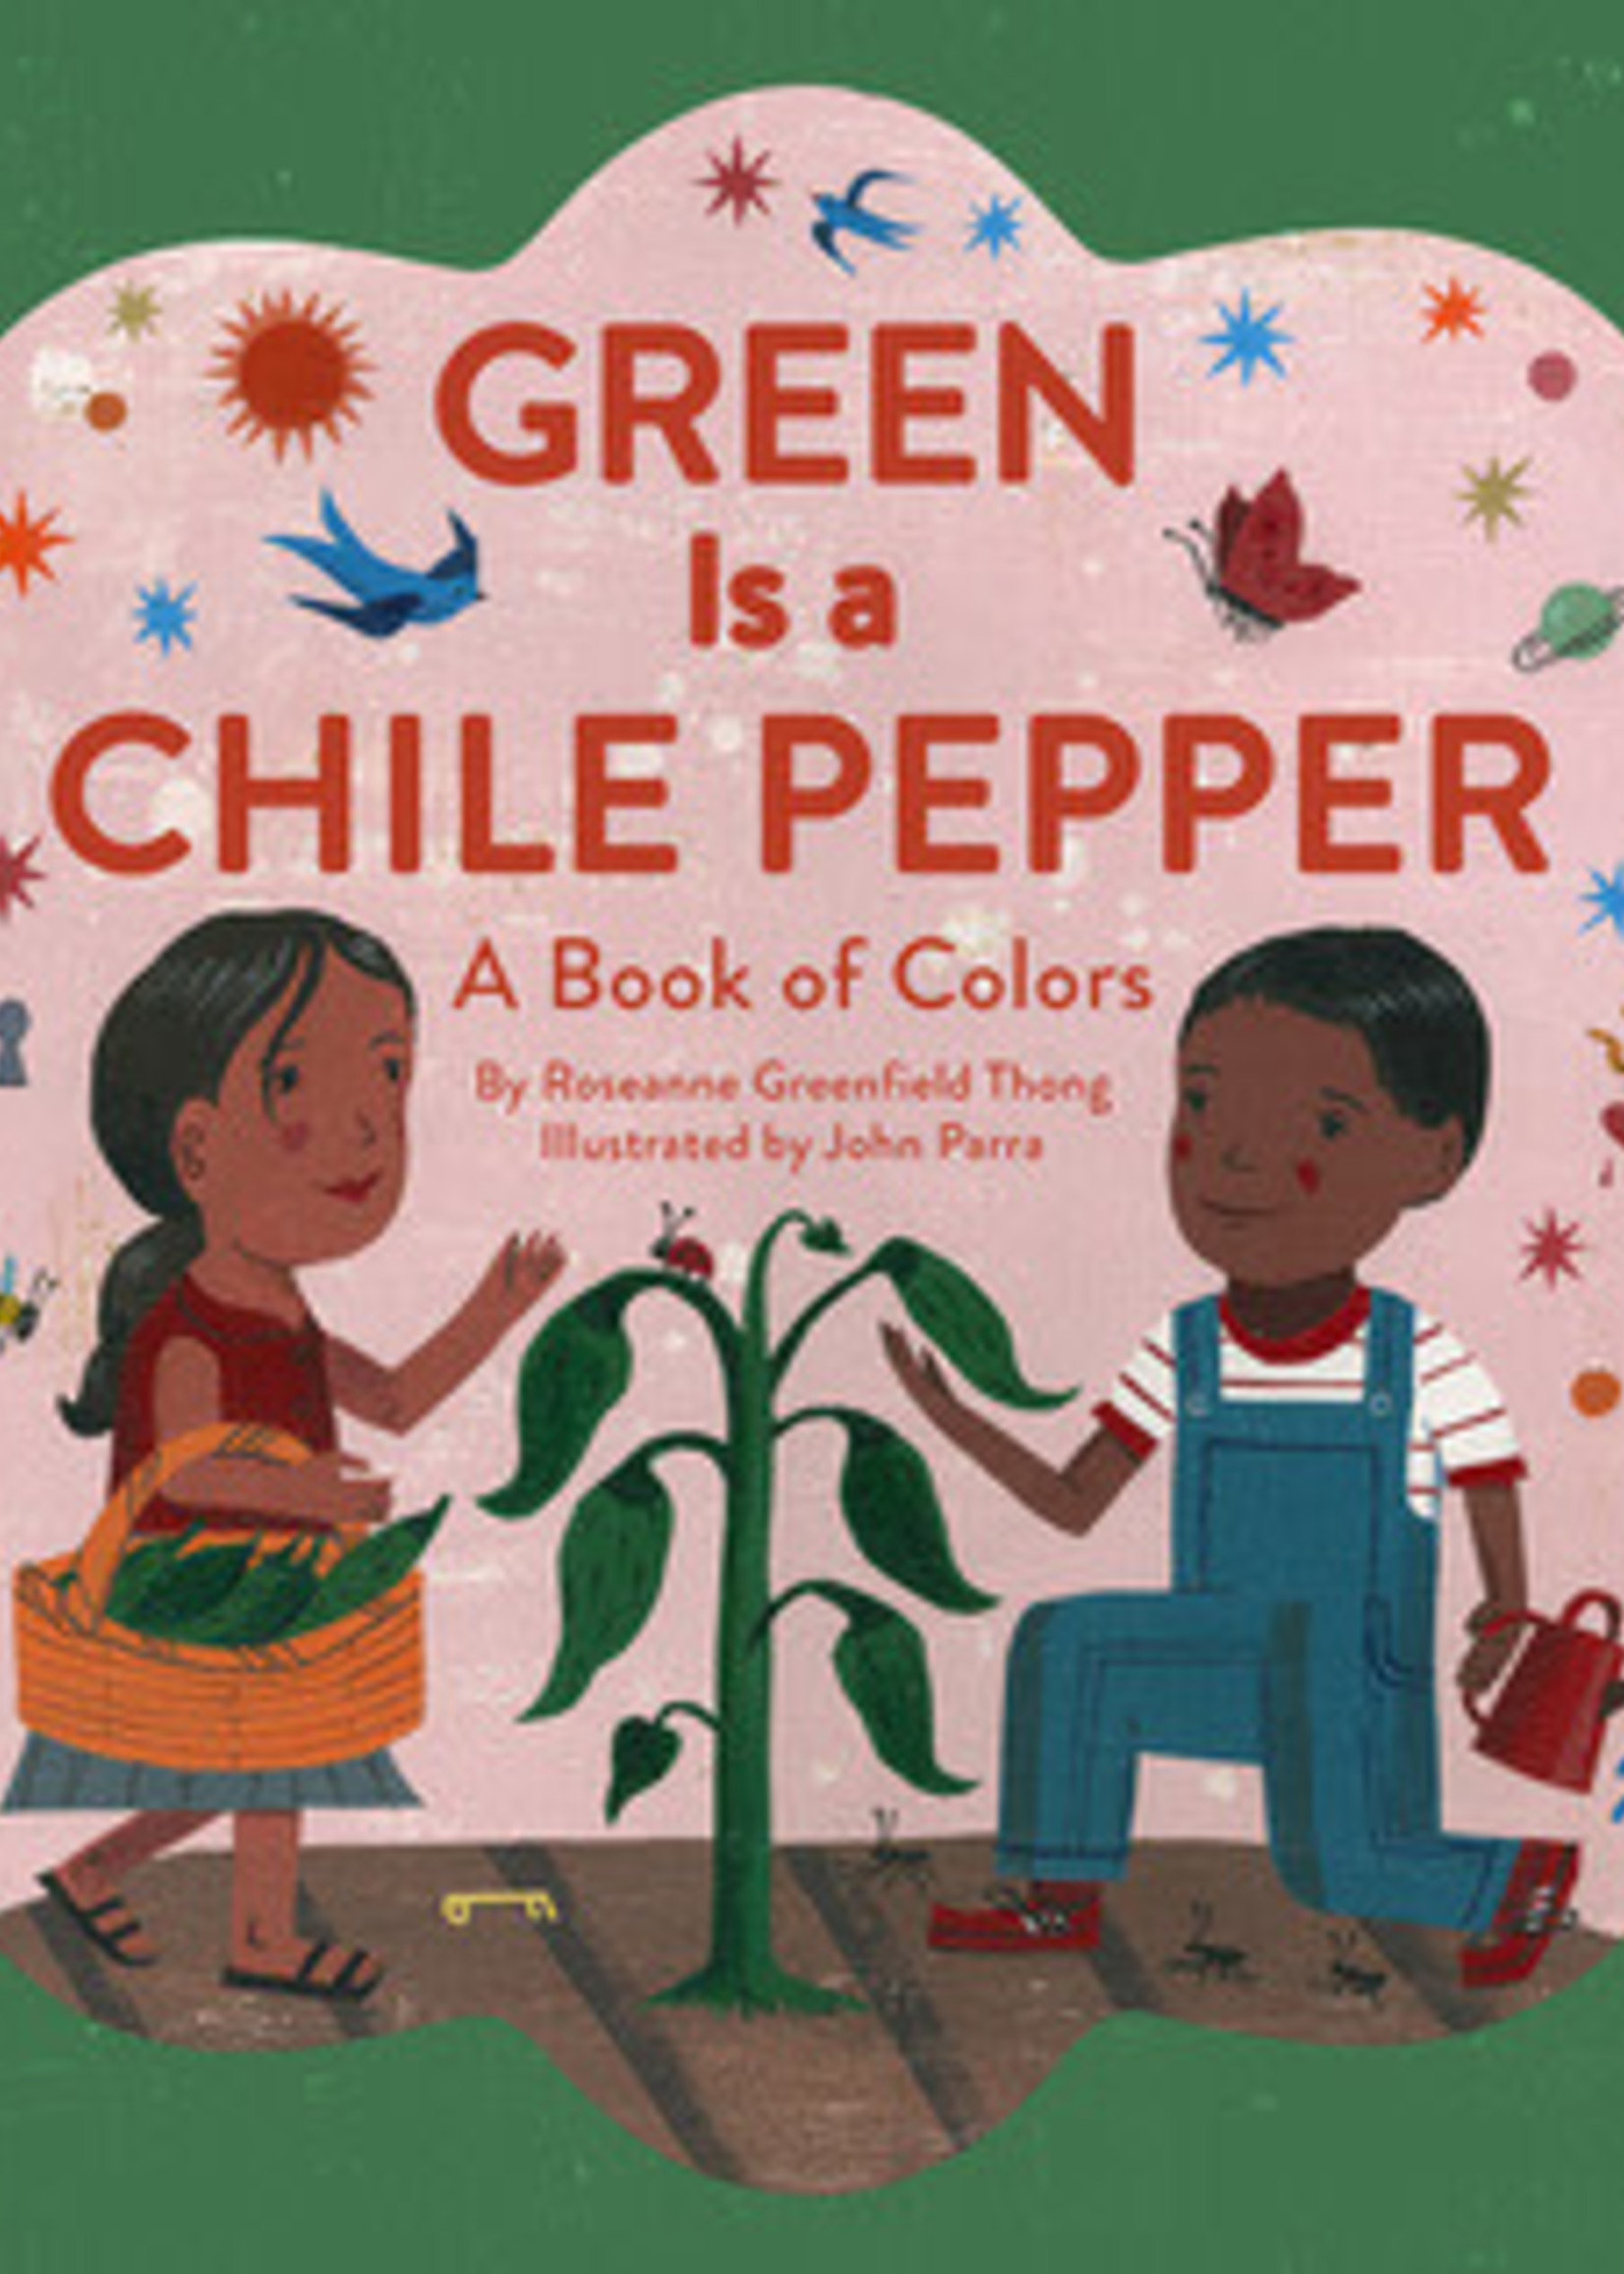 Green is  a Chile Pepper: A Book of Colors by Roseanne Greenfield thong